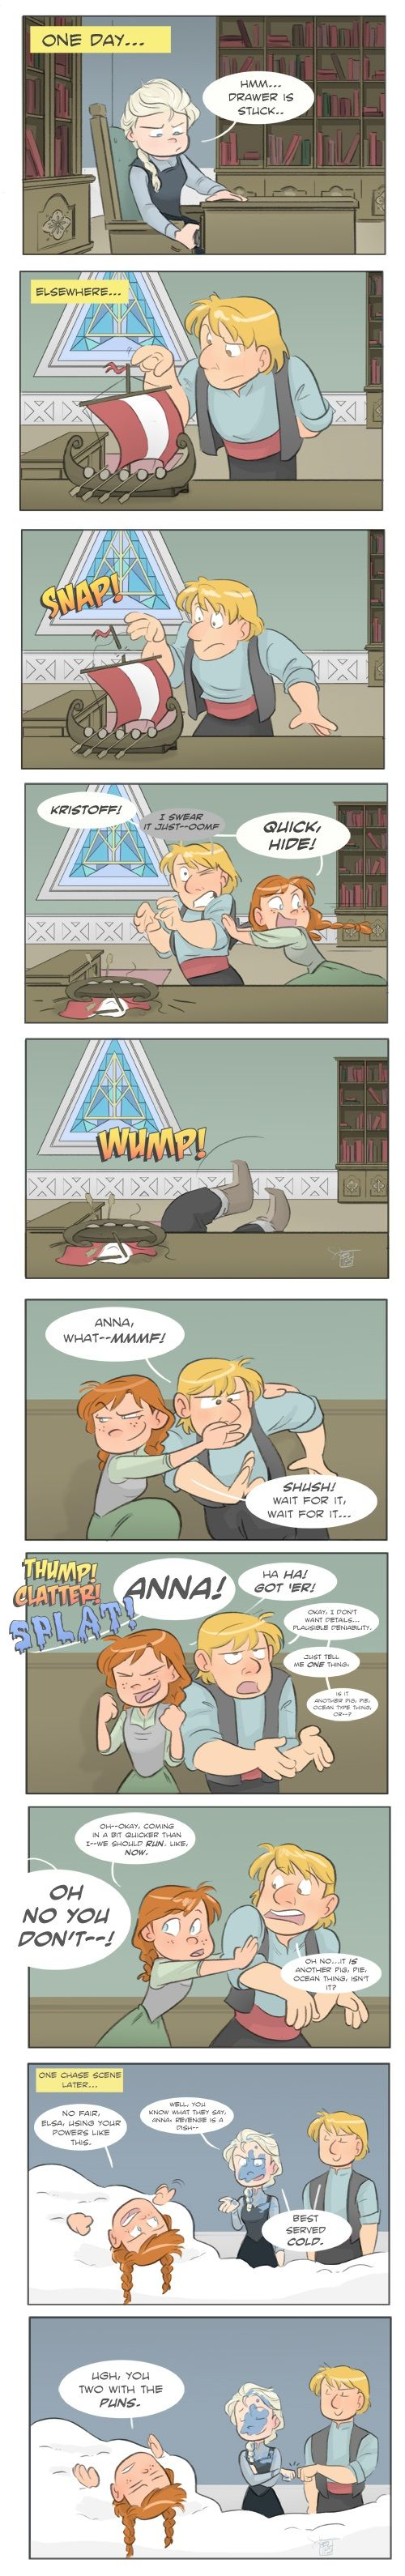 bwahaha, Elsa and Kristoff being buds is one of my favorite things :D I also 100% believe this would actually happen